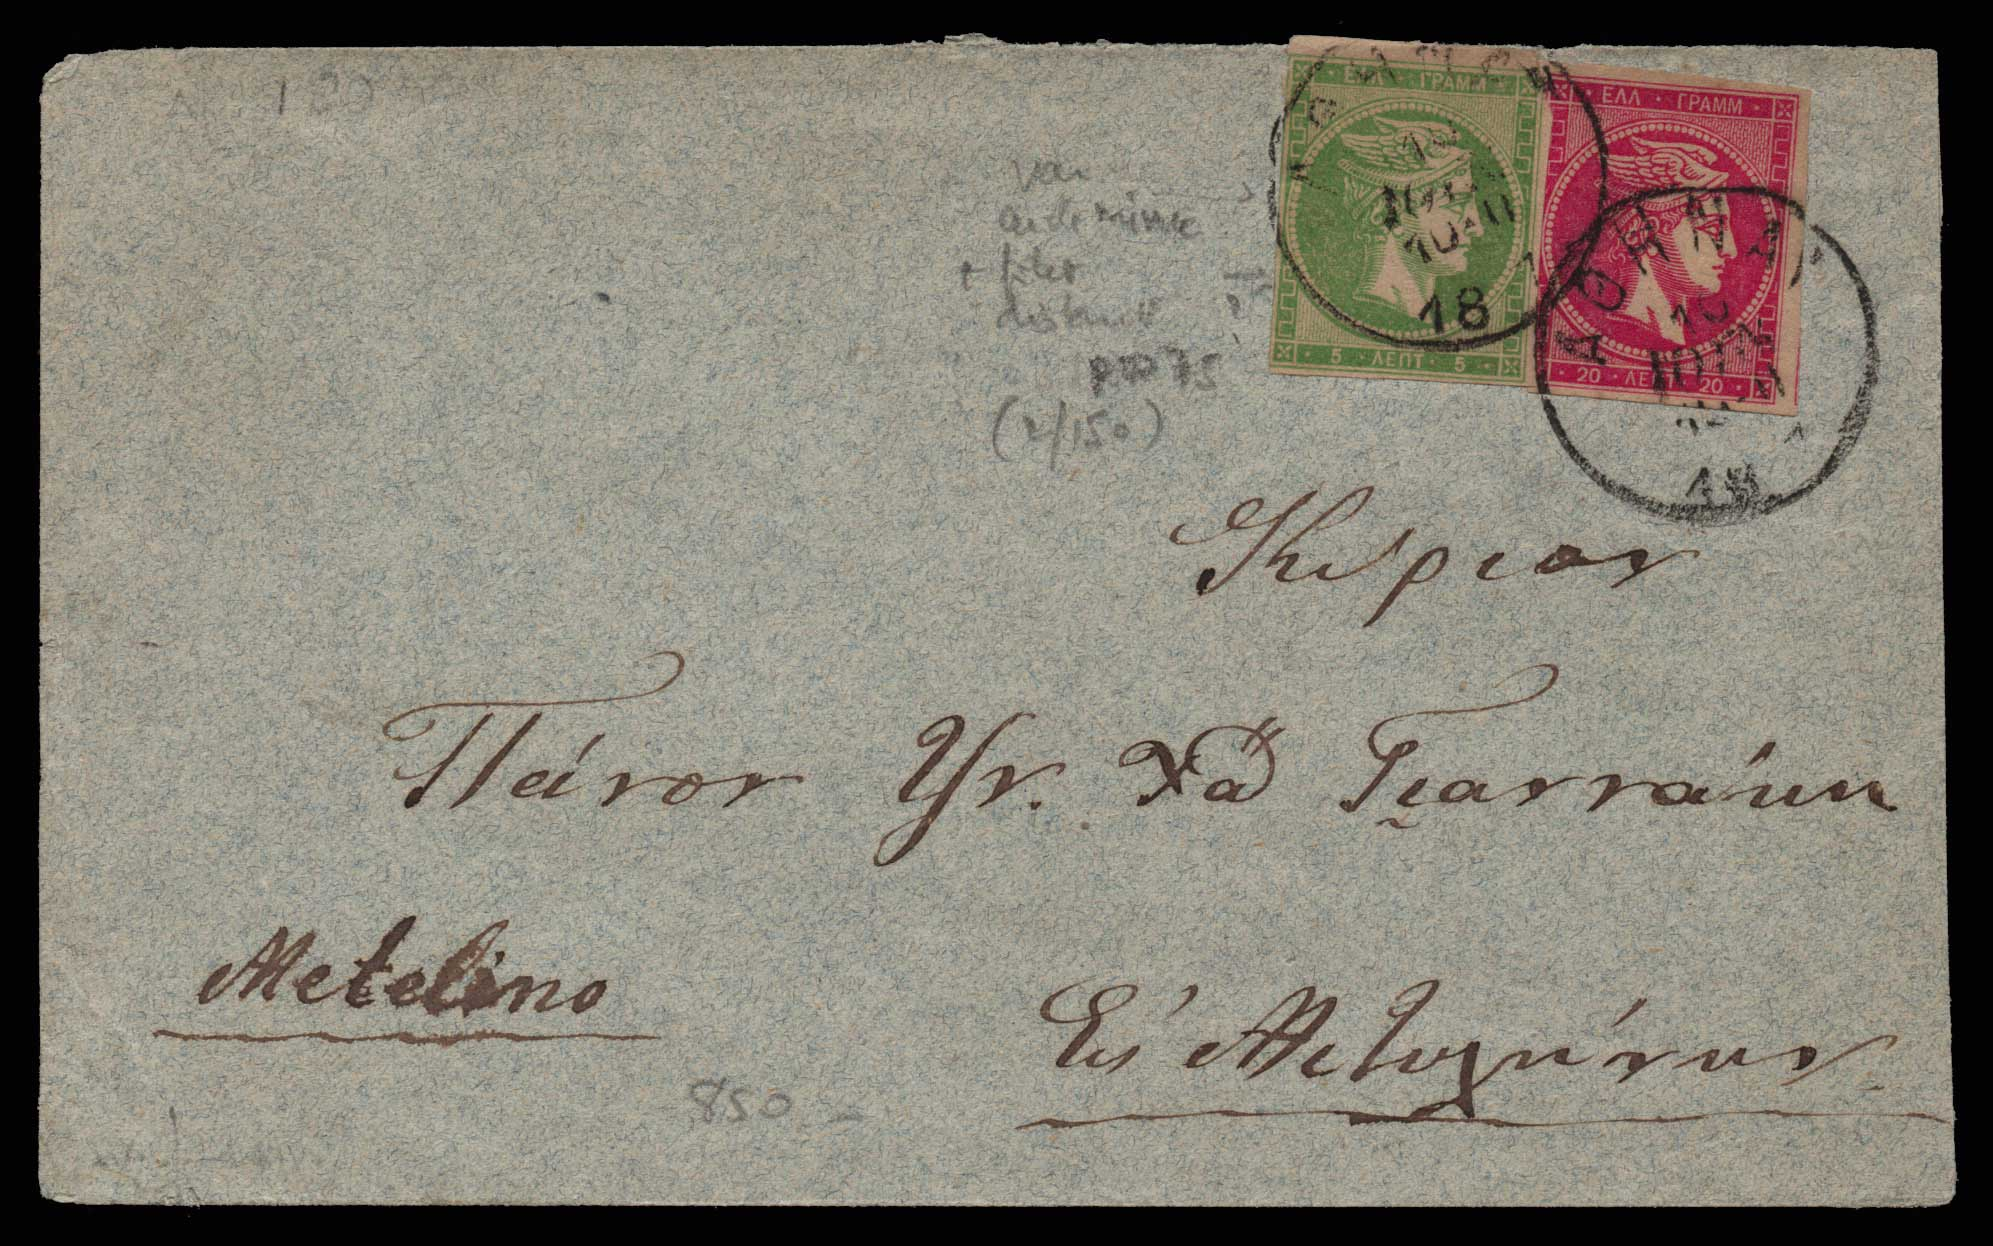 Lot 364 - GREECE-  LARGE HERMES HEAD 1880/86 athens printing -  Athens Auctions Public Auction 66 General Stamp Sale